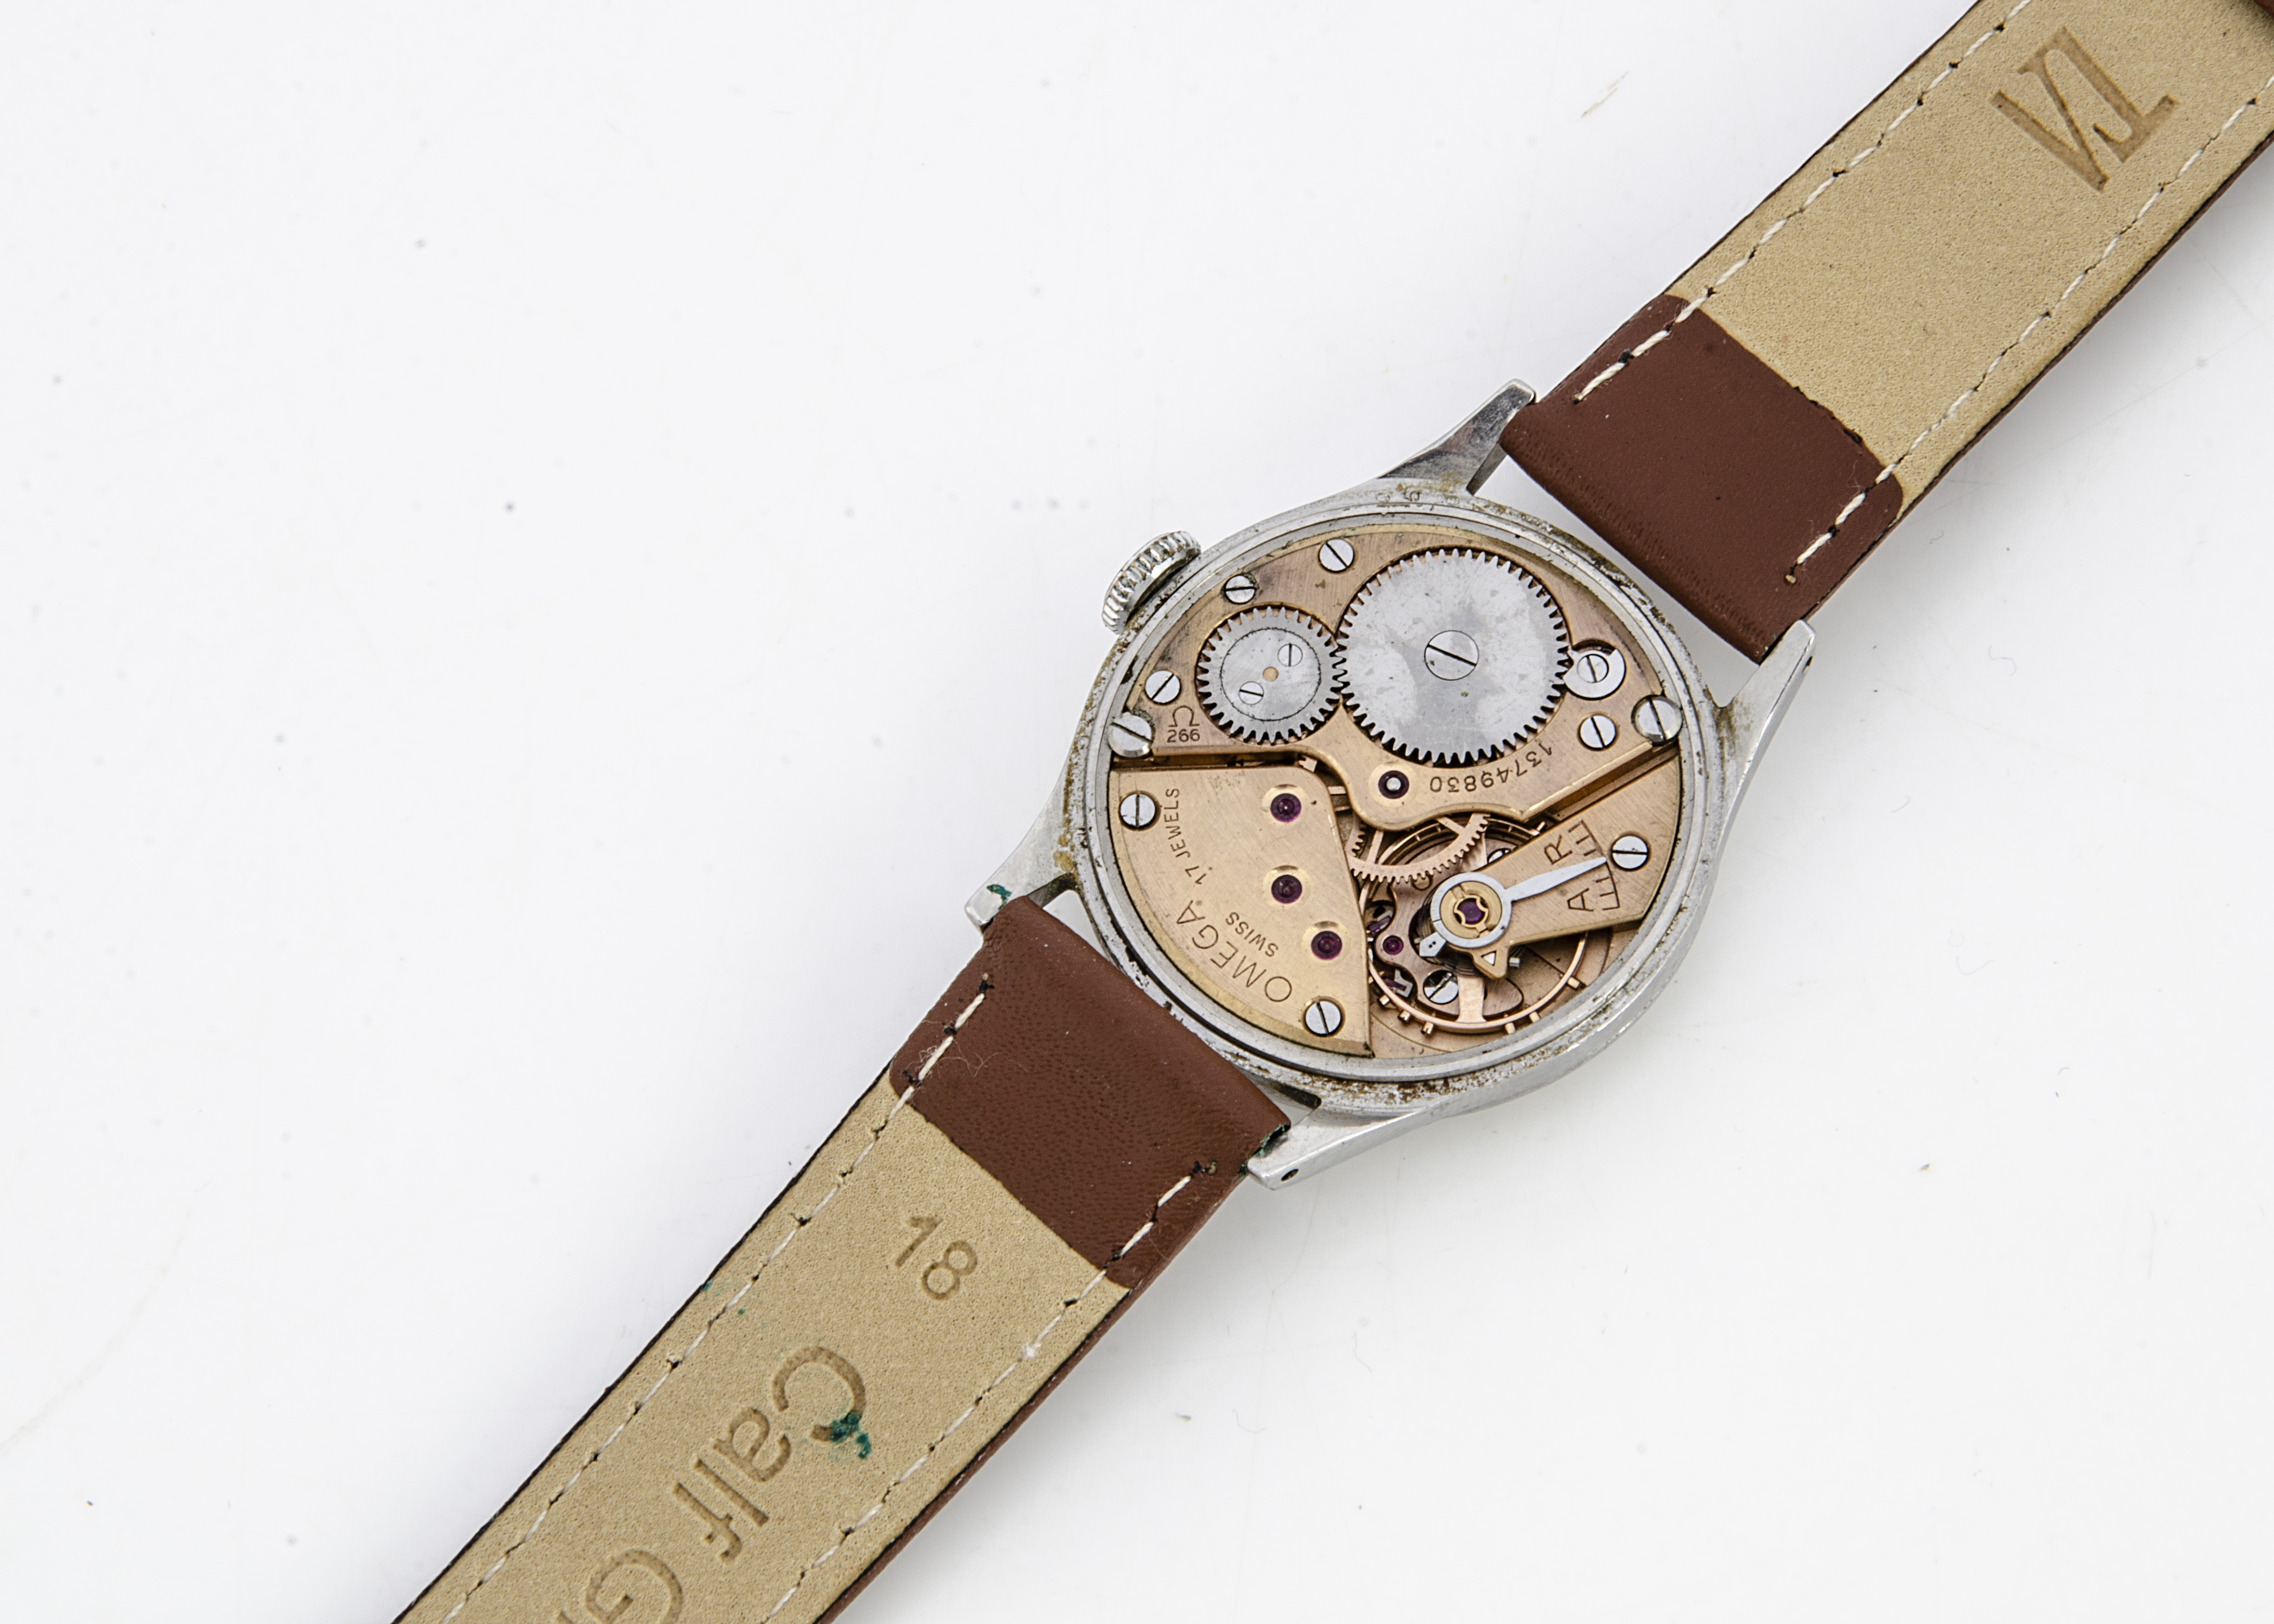 A 1950s Omega stainless steel gentleman's wristwatch, 34mm, cream coloured dial with batons, - Image 2 of 3